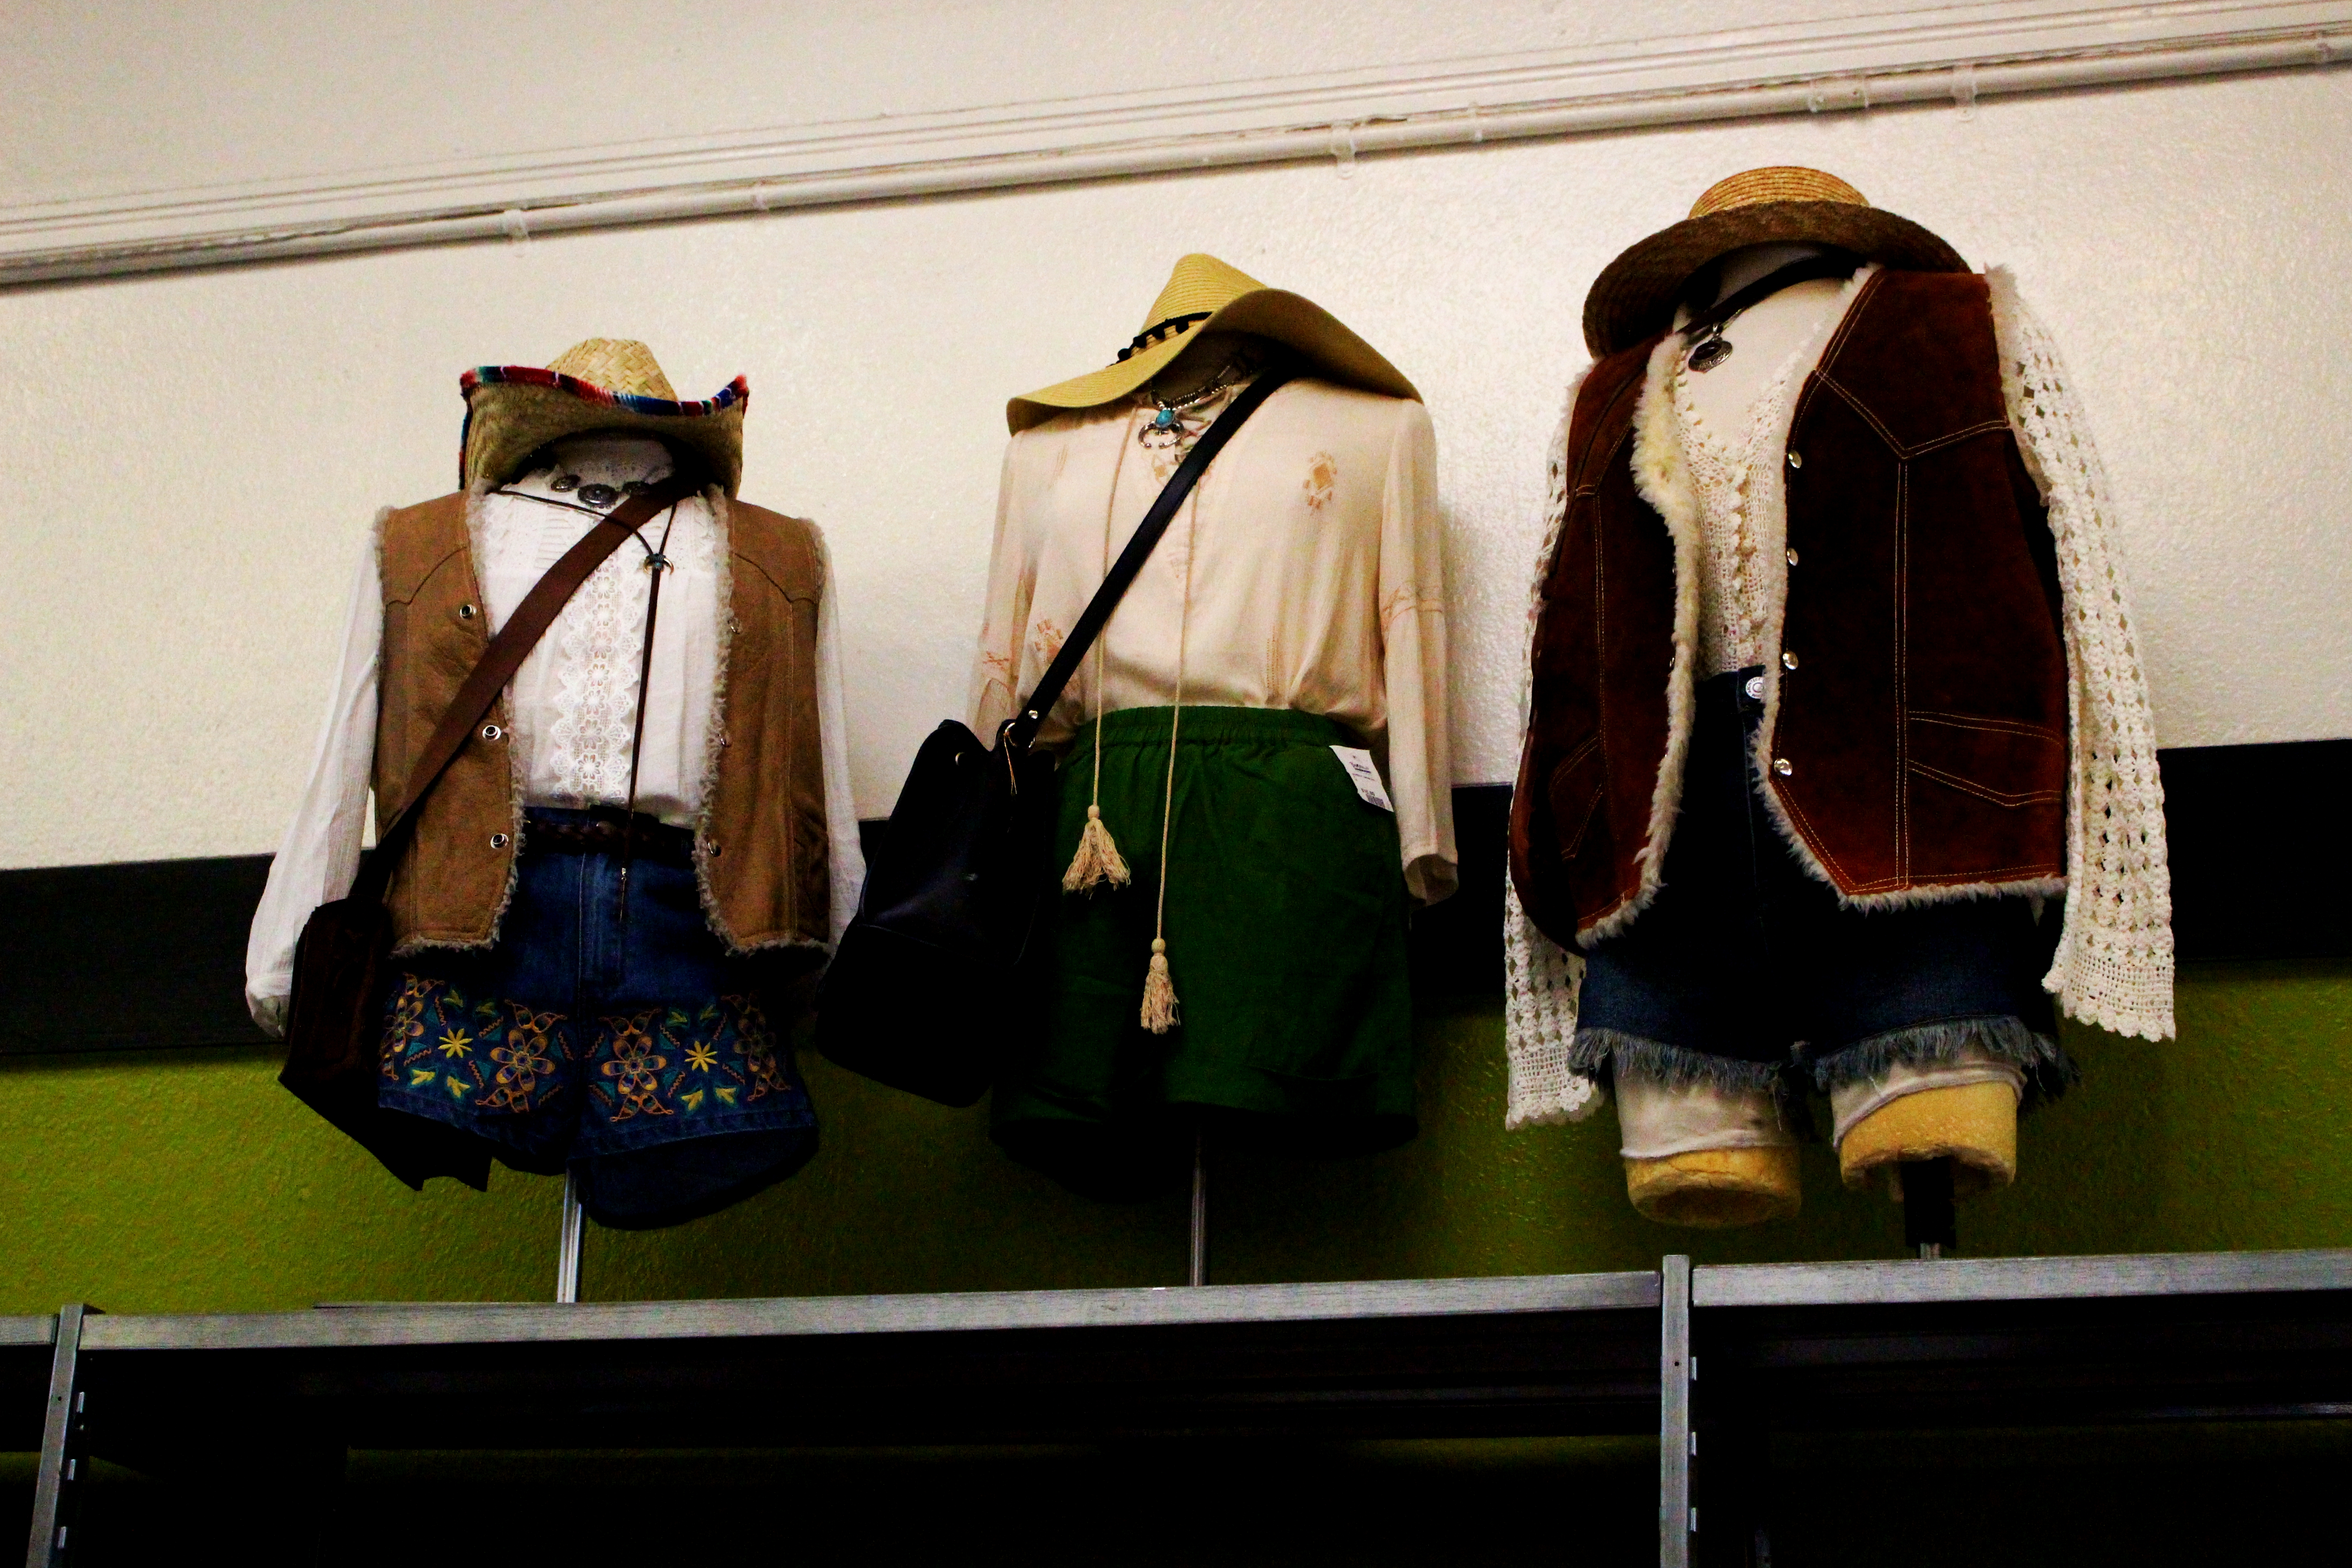 Three outfits are put on display. Credit: Fiona Belk / M-A Chronicle.